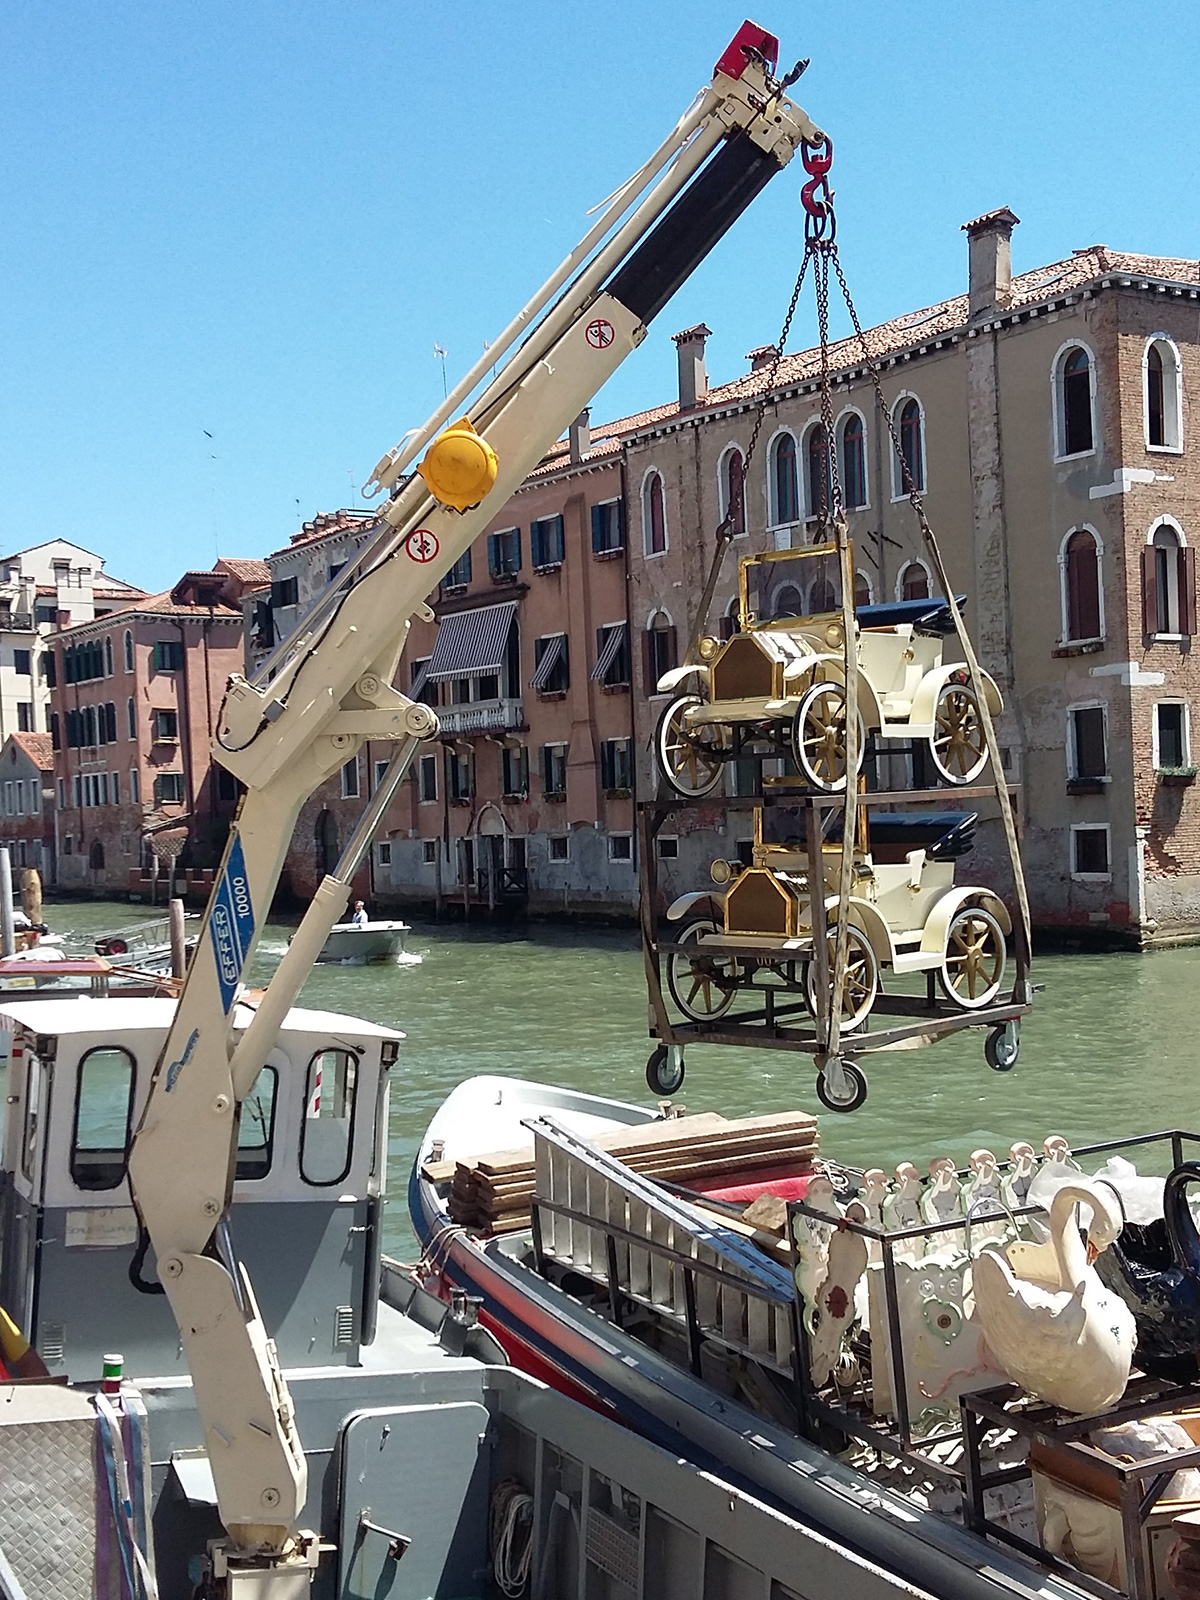 Our quay in the Tronchetto area: loading materials for events into a boat